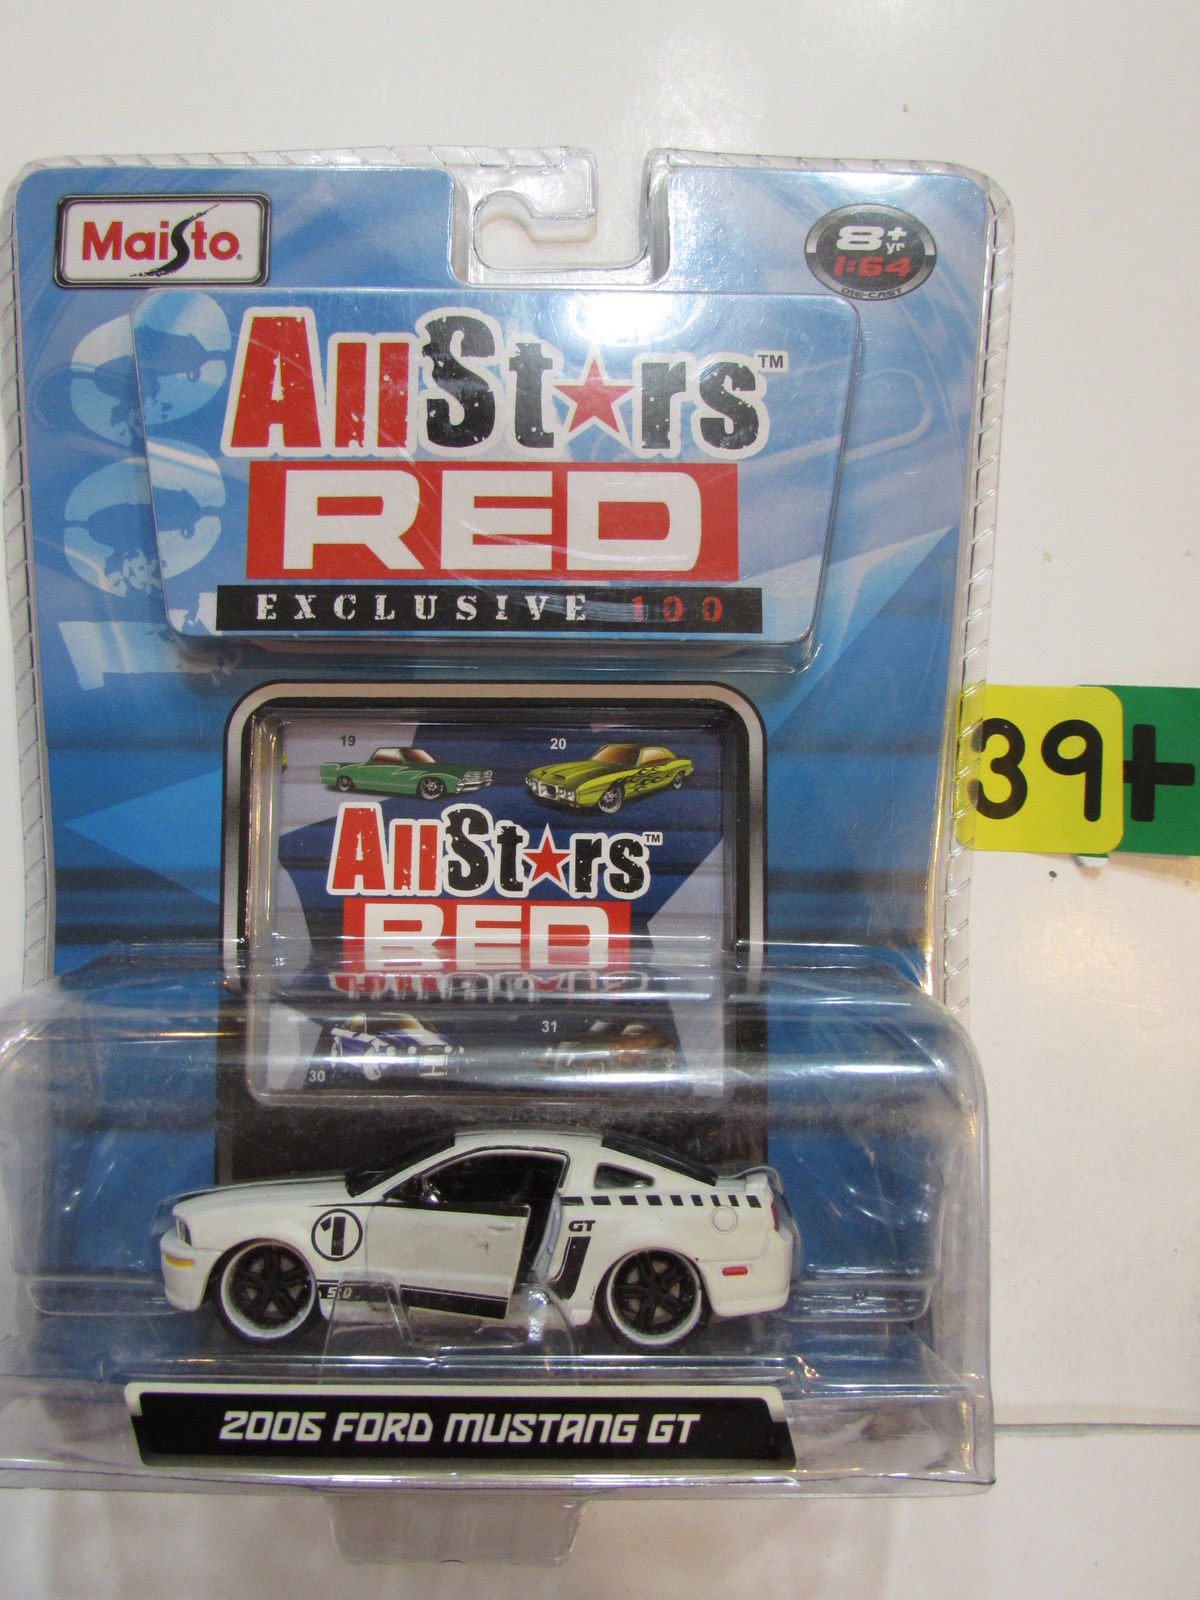 MAISTO ALLSTARS RED EXCLUSIVE 100 - 2006 FORD MUSTANG GT WHITE